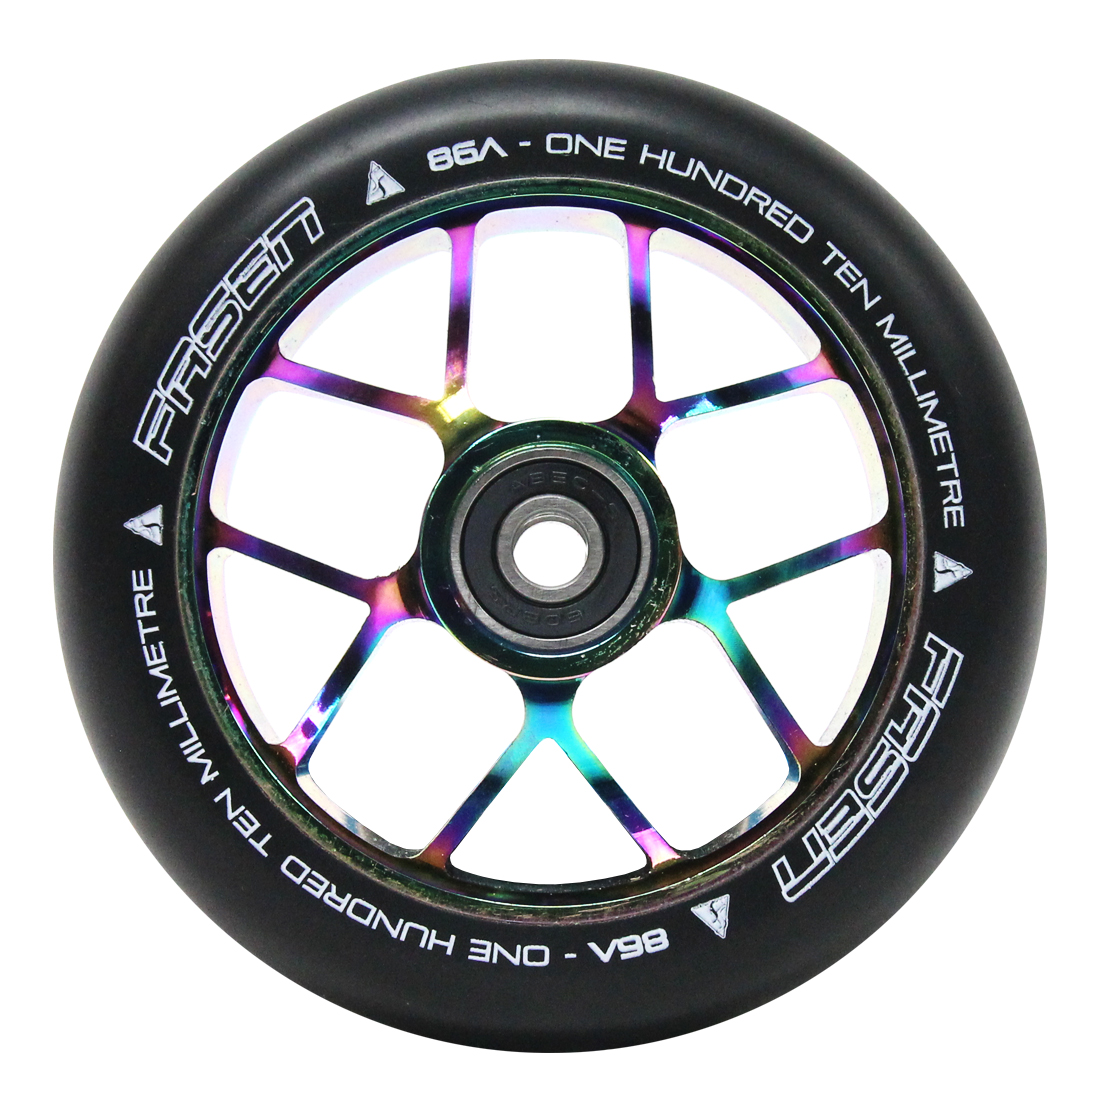 Fasen Jet 110mm Wheel - Oil slick